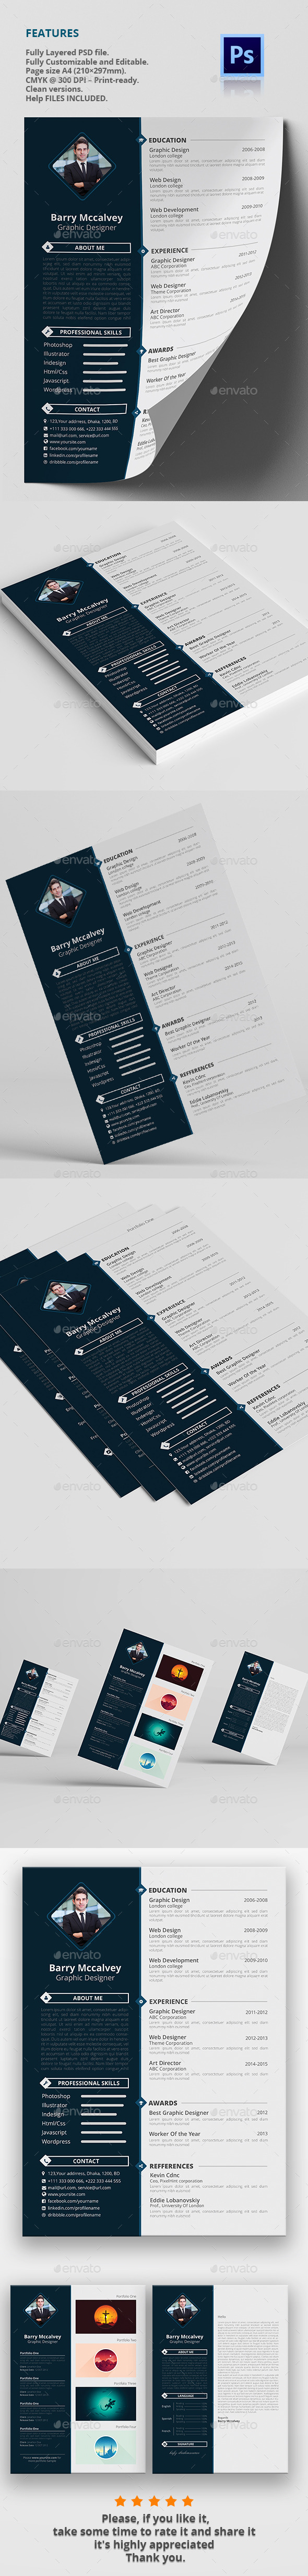 GraphicRiver Clean & Simple Resume CV 11159454